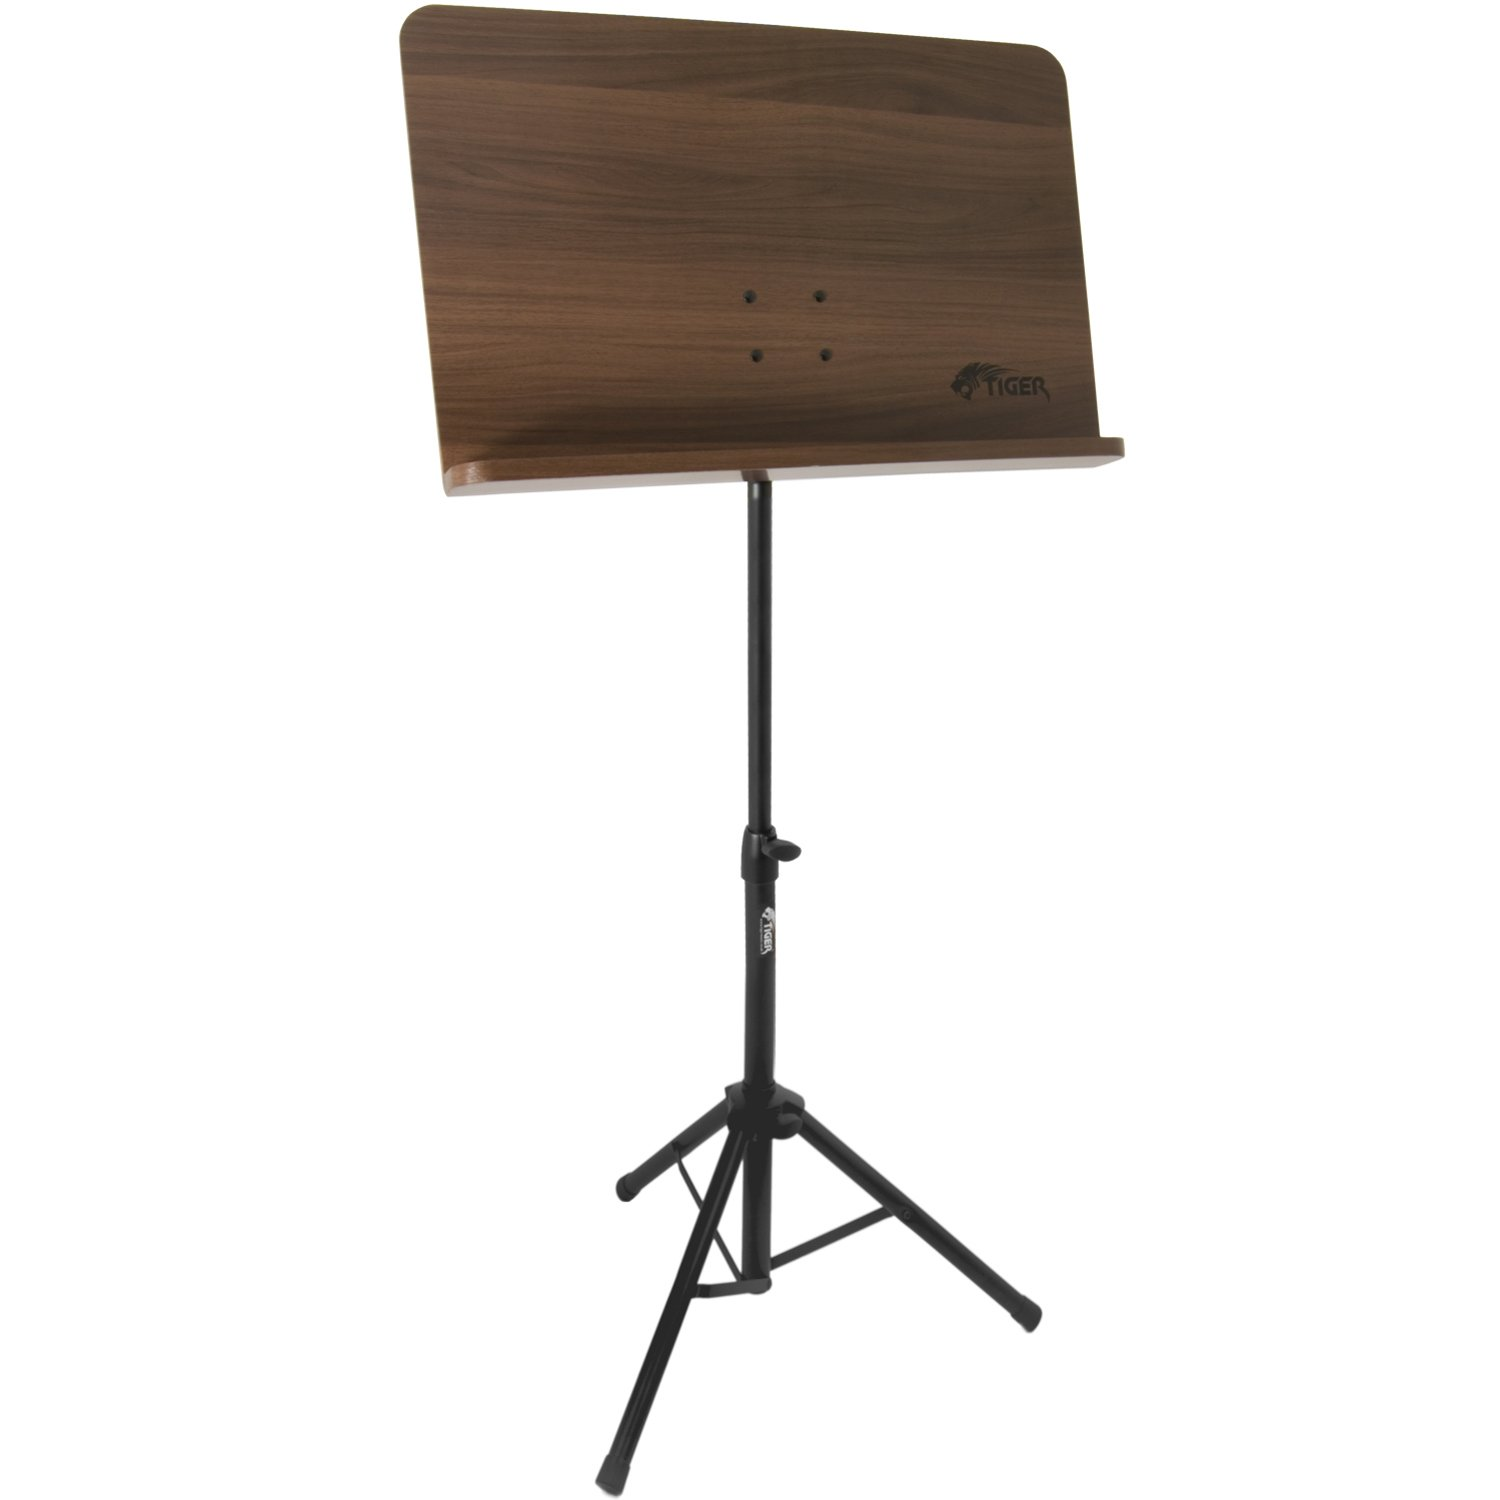 tiger wooden music stand adjustable orchestral sheet music stand